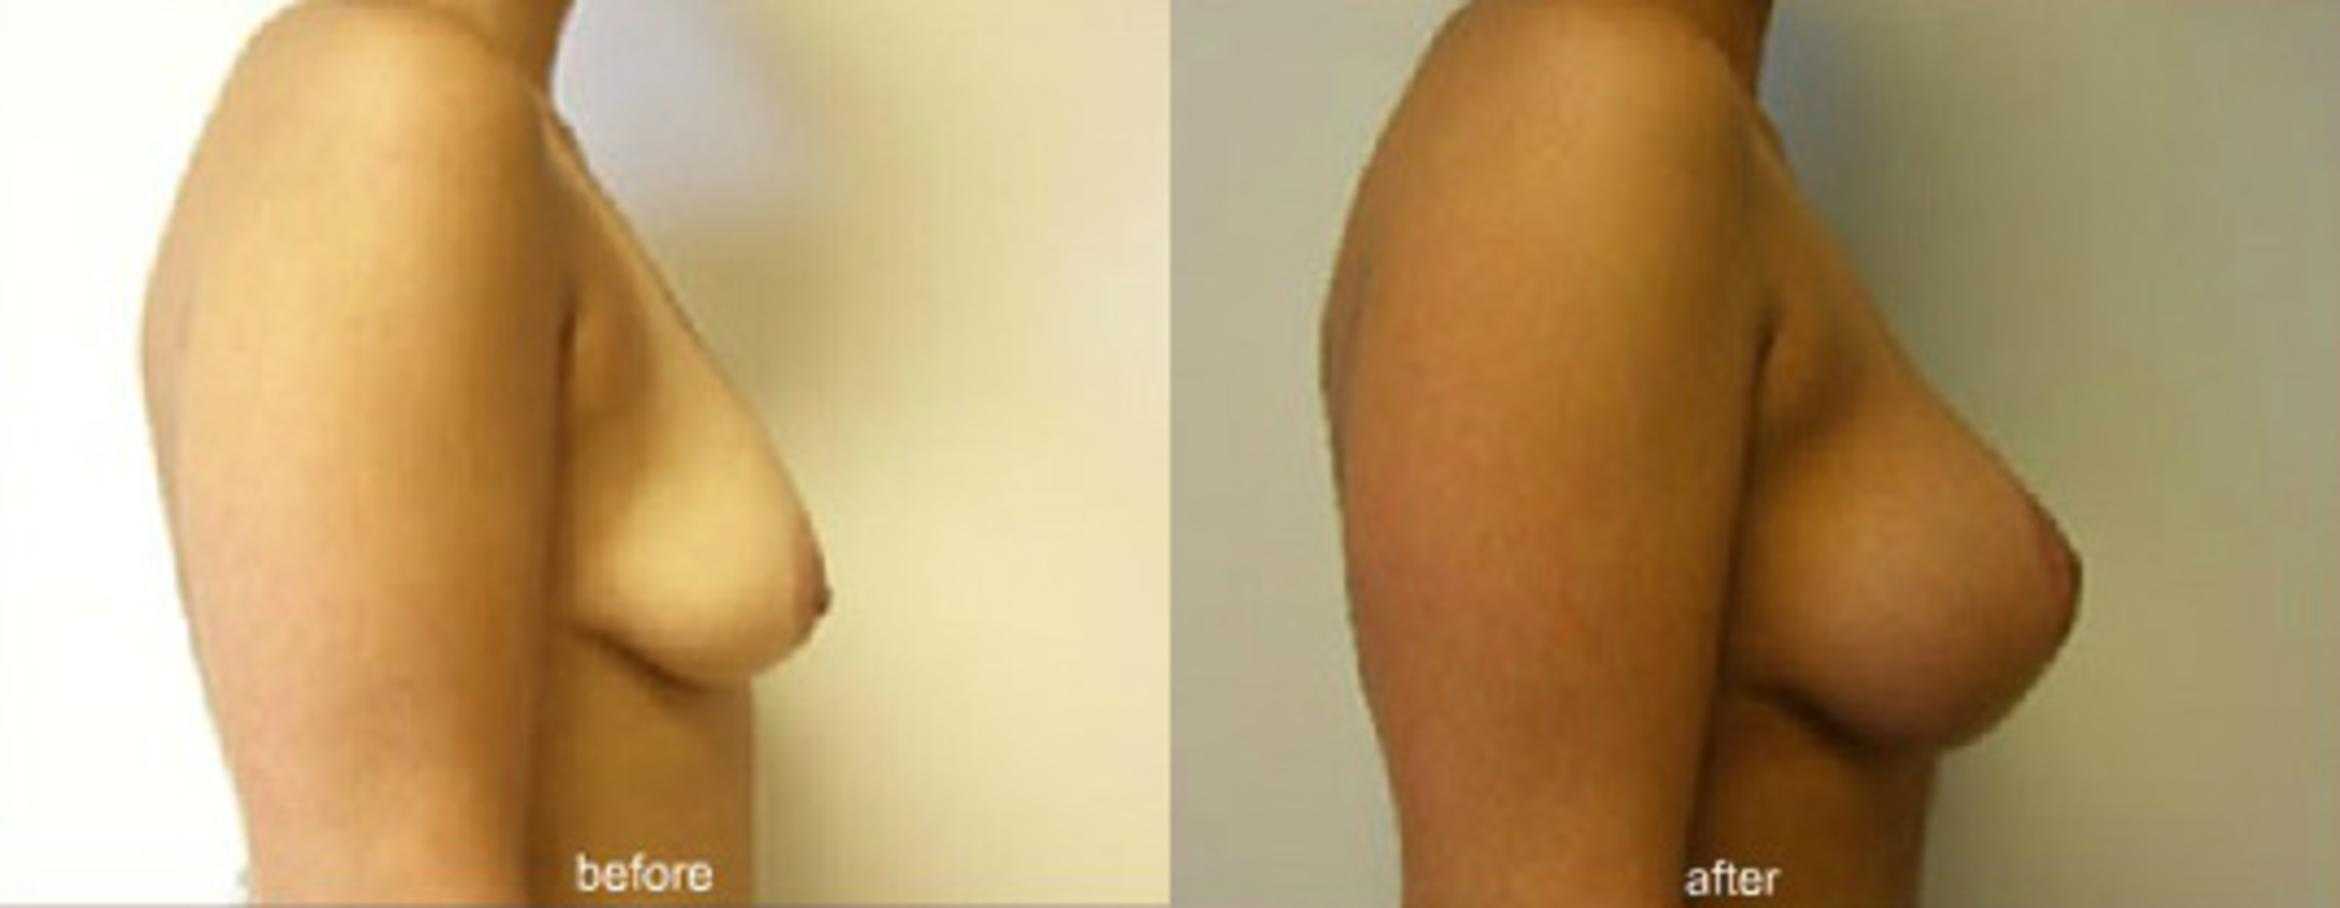 Breast Lift with Implants Case 55 Before & After View #1 | Honolulu, HI | Shim Ching, MD: Asia Pacific Plastic Surgery